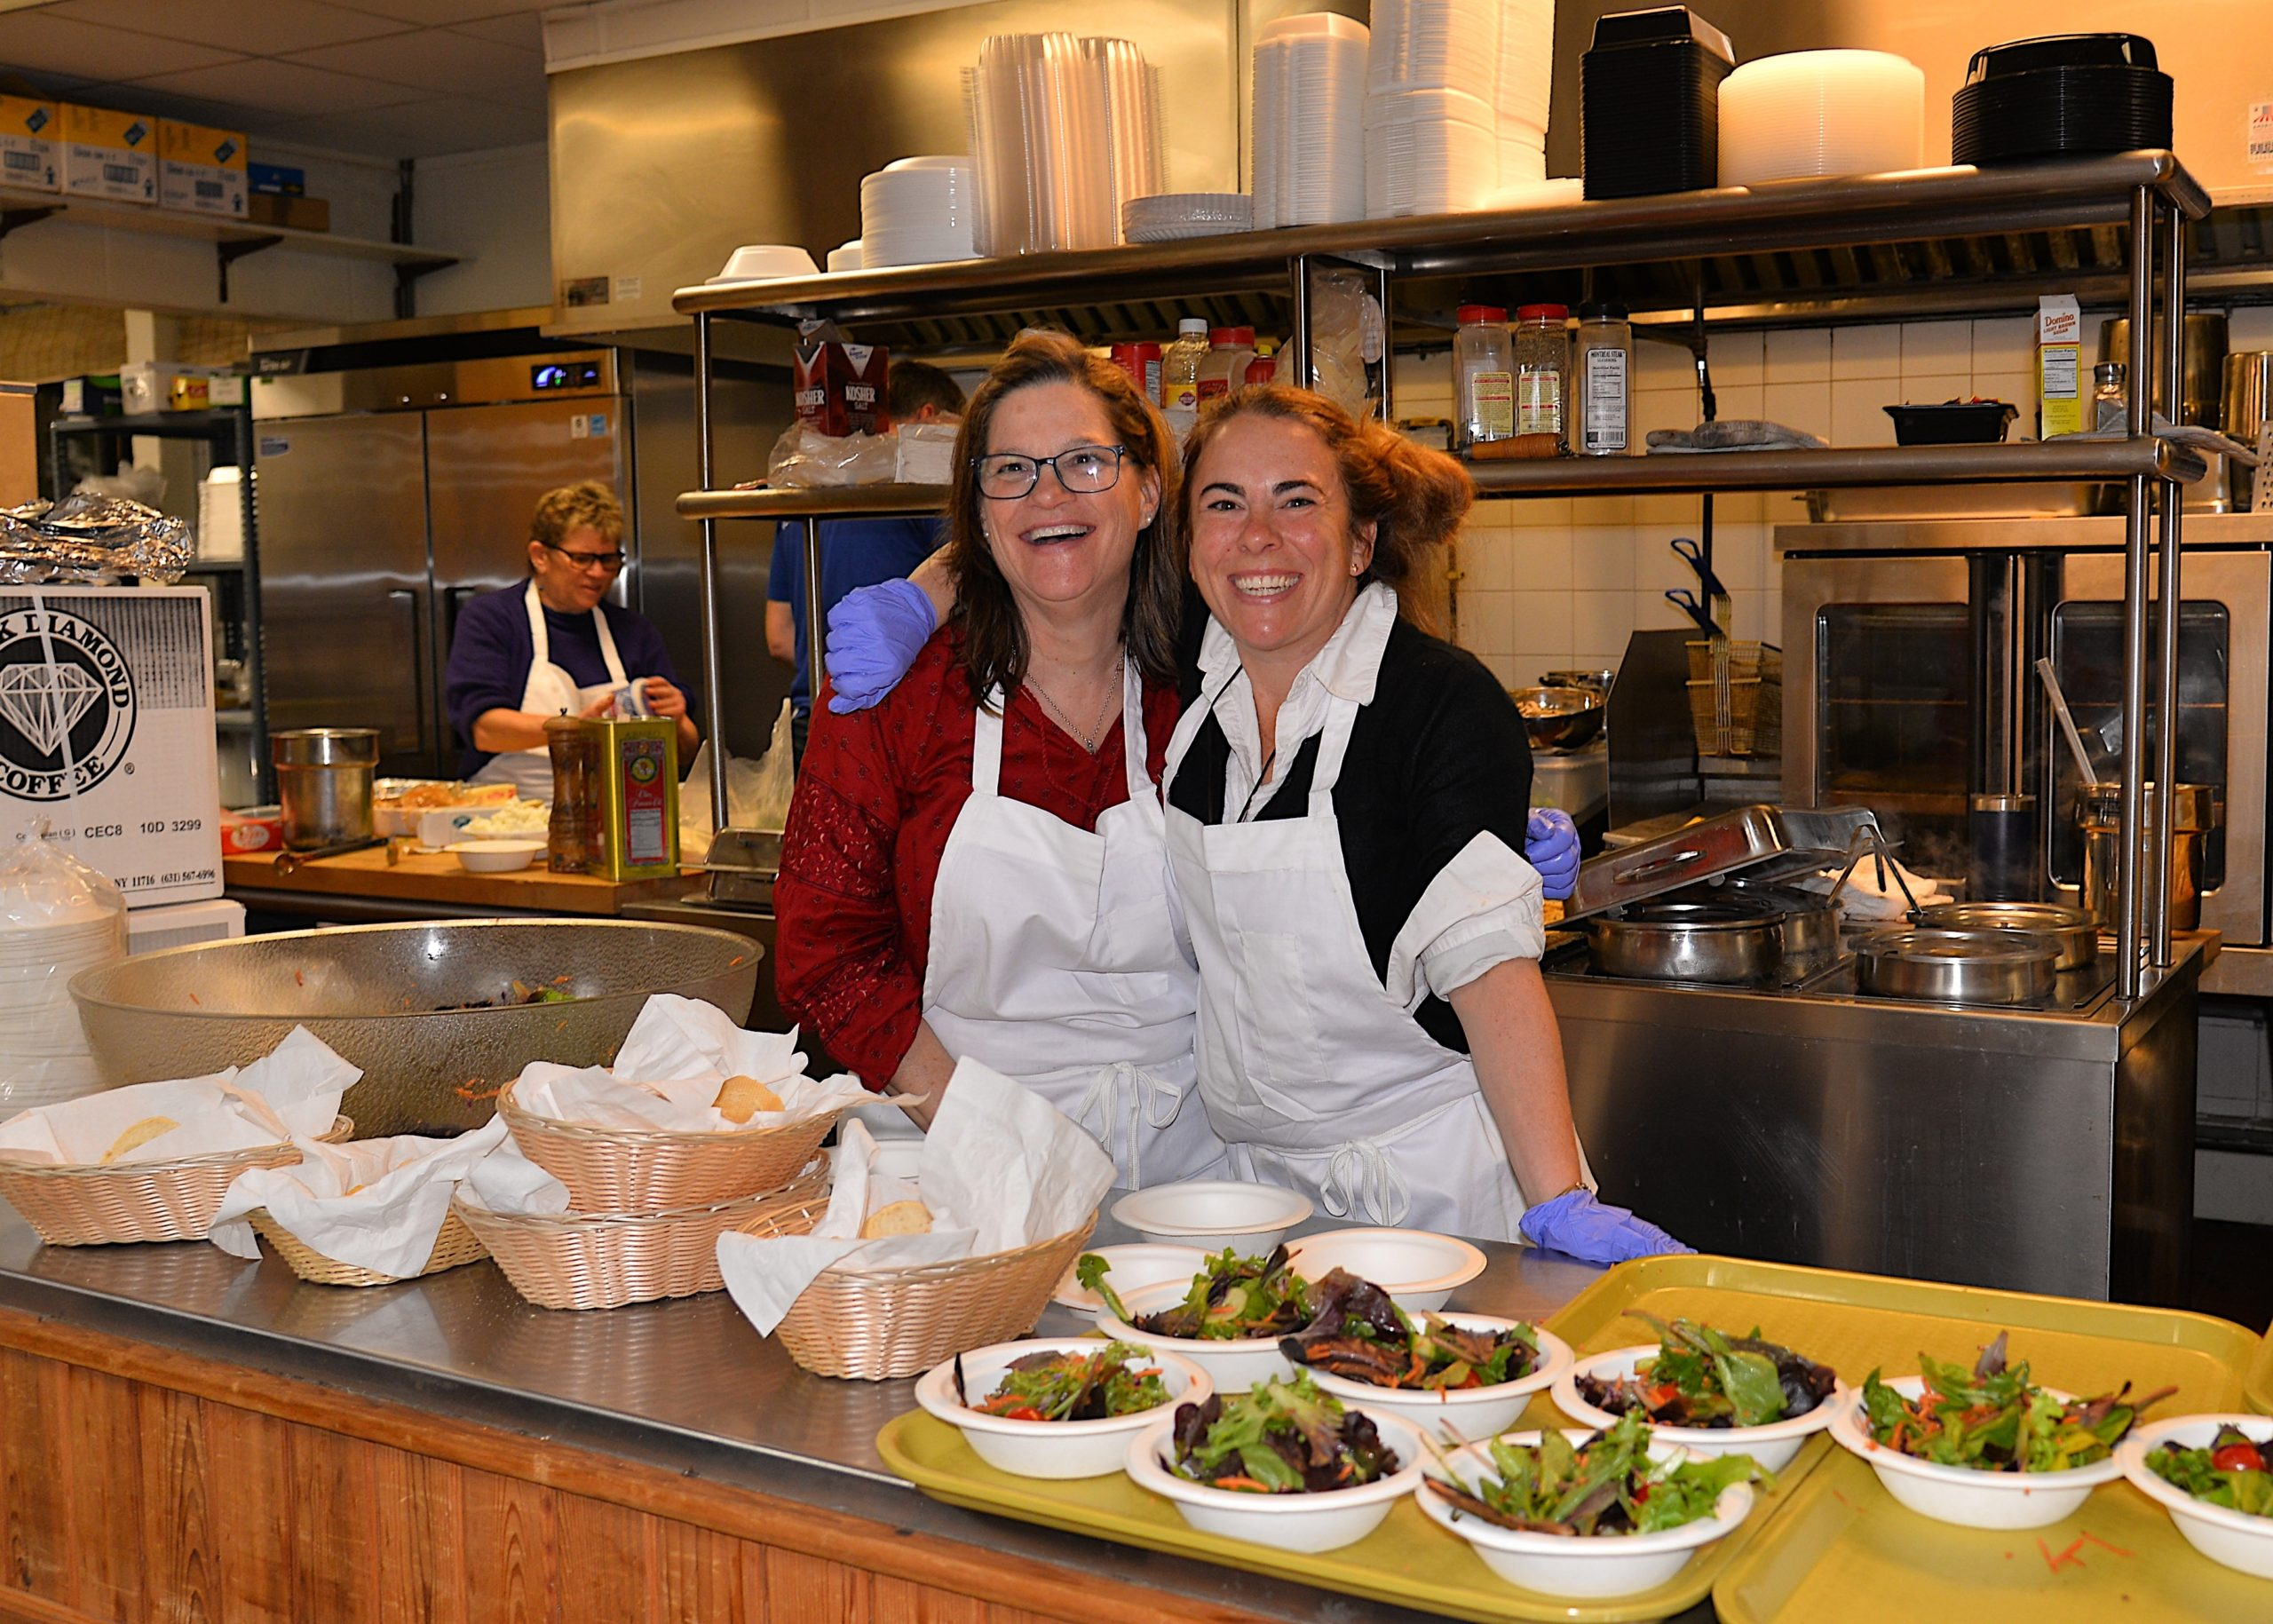 A pasta dinner fundraiser took place at the Montauk firehouse on Saturday to benefit the Robert R. Fisher scholarship fund. Regan Moloney and Shannon Coppola helped out. KYRIL BROMLEY